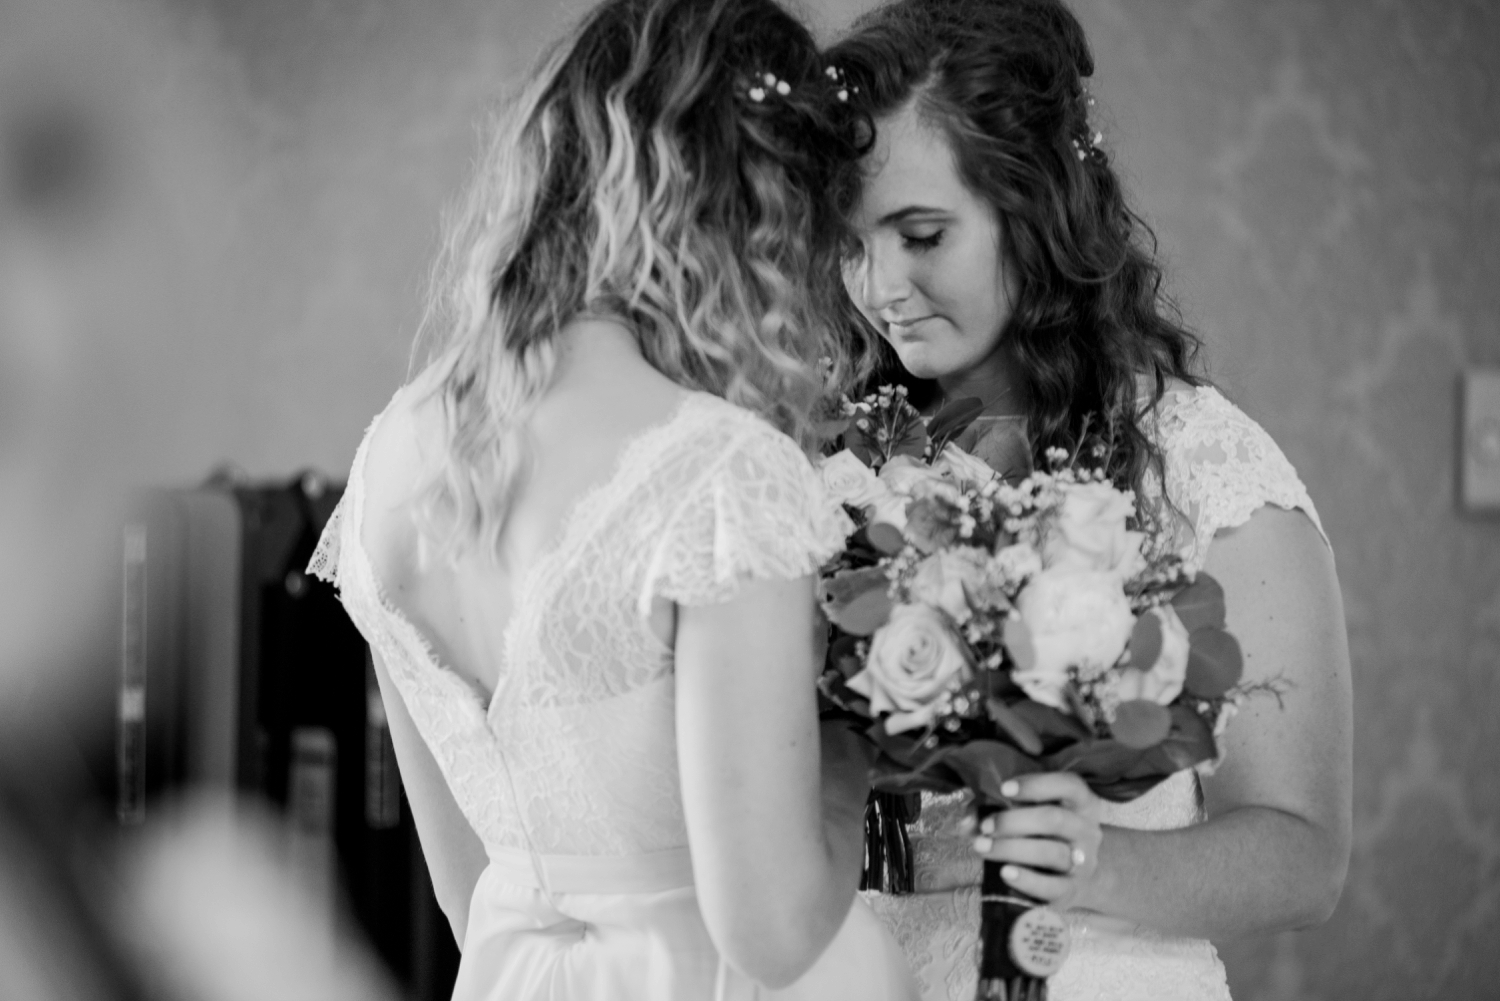 Community_Life_Center_Indianapolis_Indiana_Wedding_Photographer_Chloe_Luka_Photography_6942.jpg